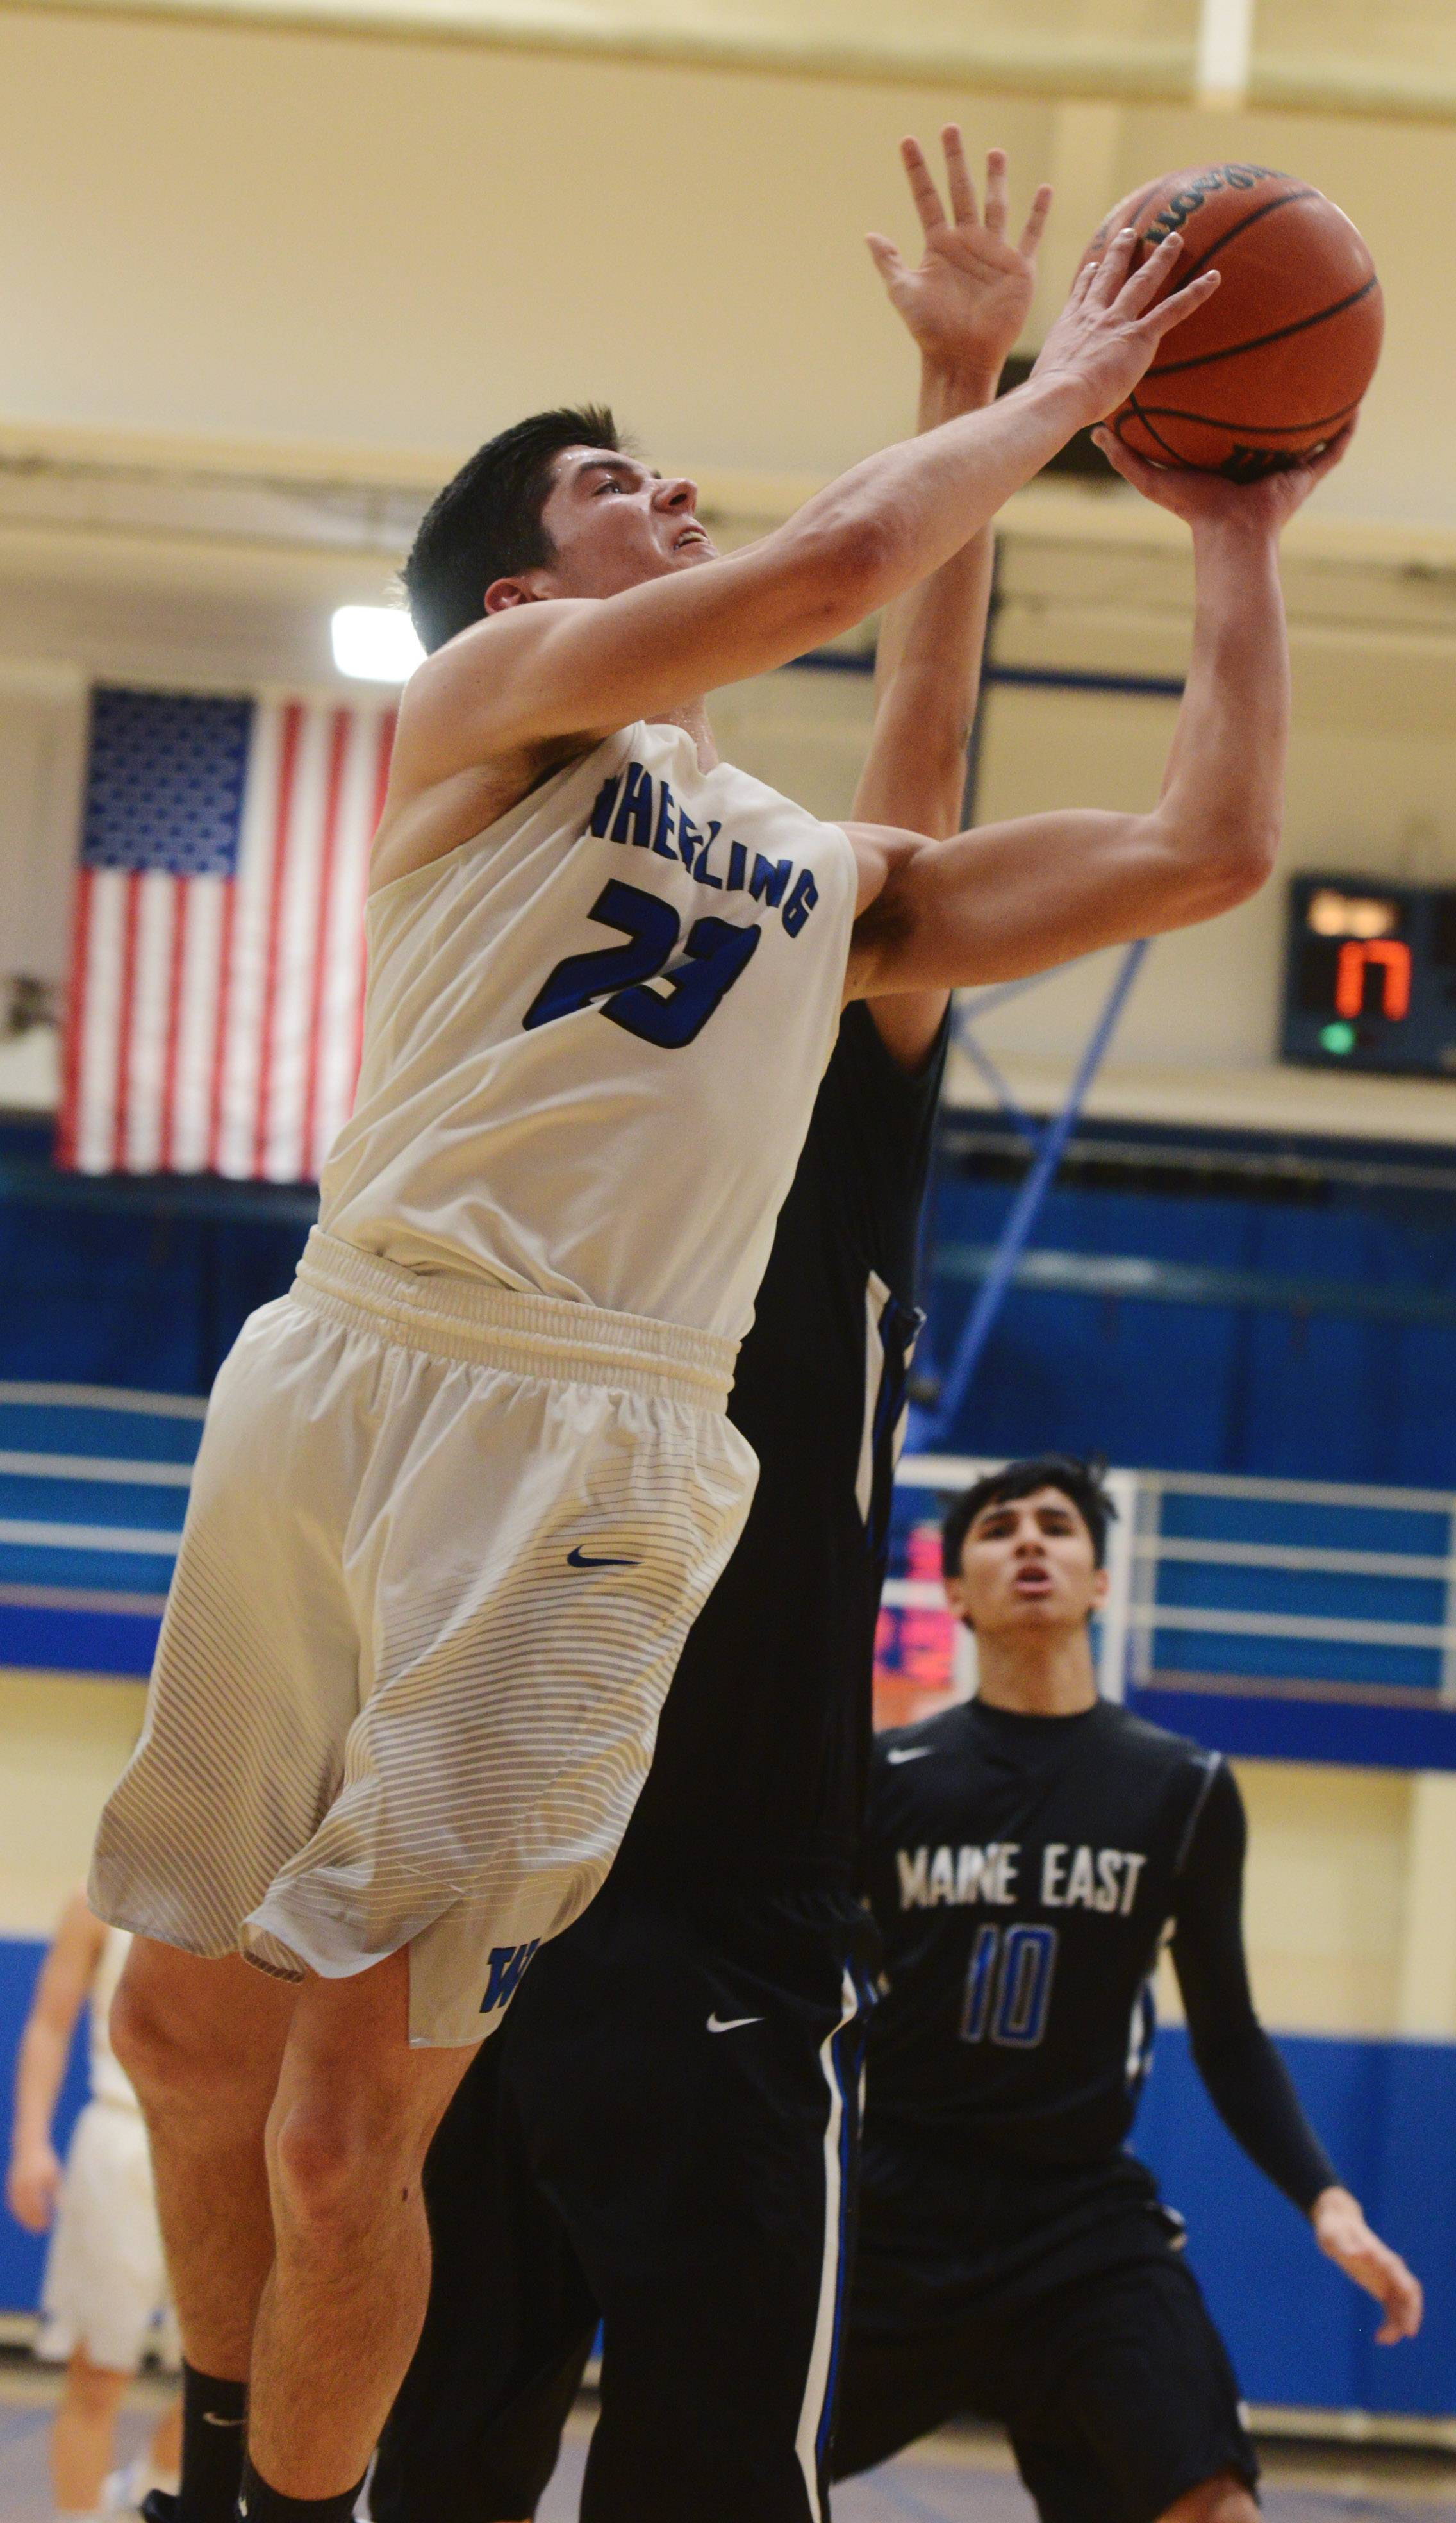 Wheeling's Michael Best makes a strong move to the basket during Tuesday's game against Maine East.